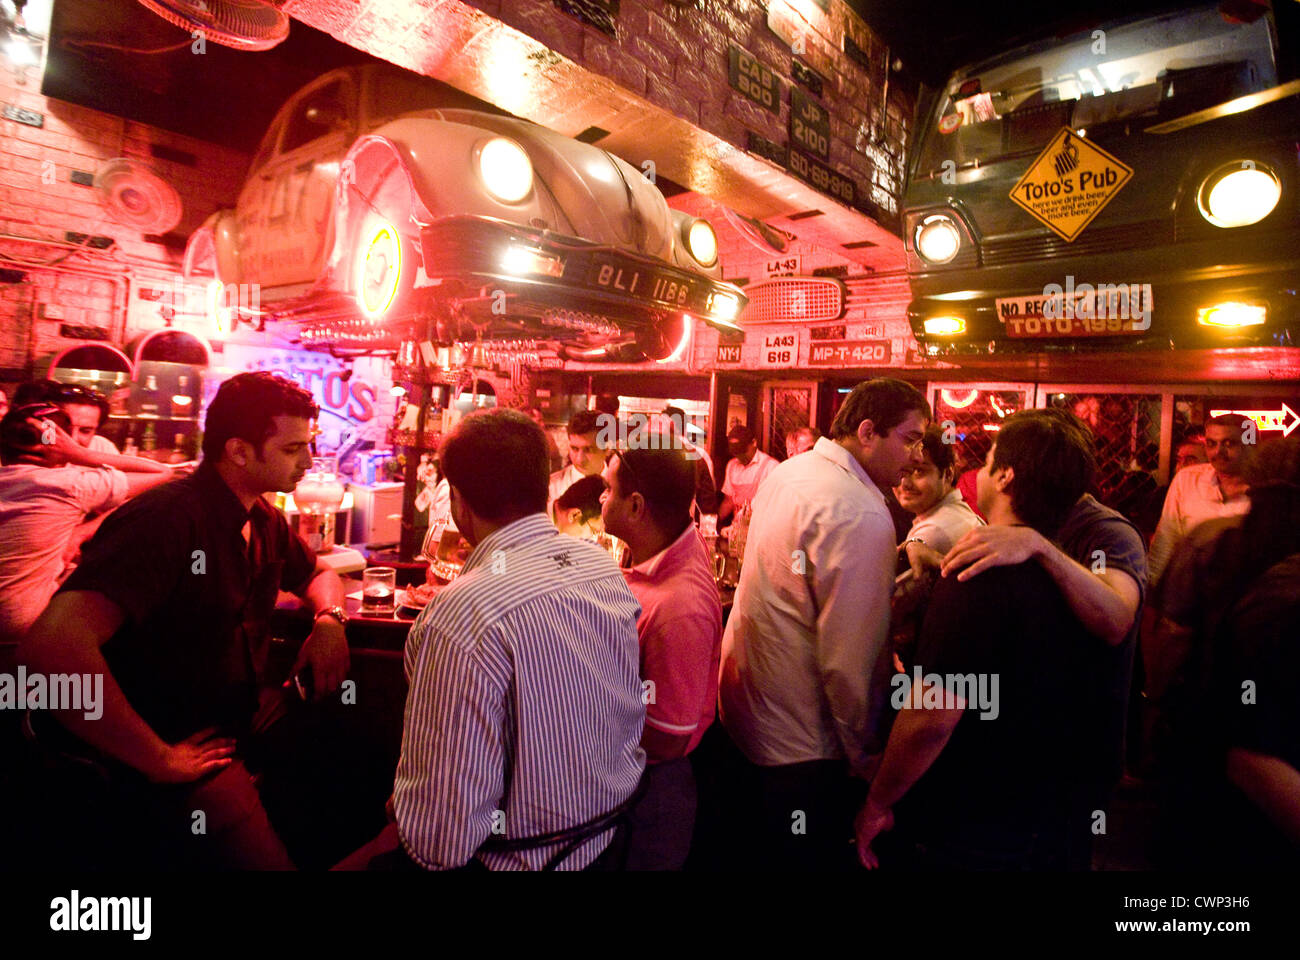 Totos Pub Bar Garage Mumbai Stock Photos & Totos Pub Bar Garage ...